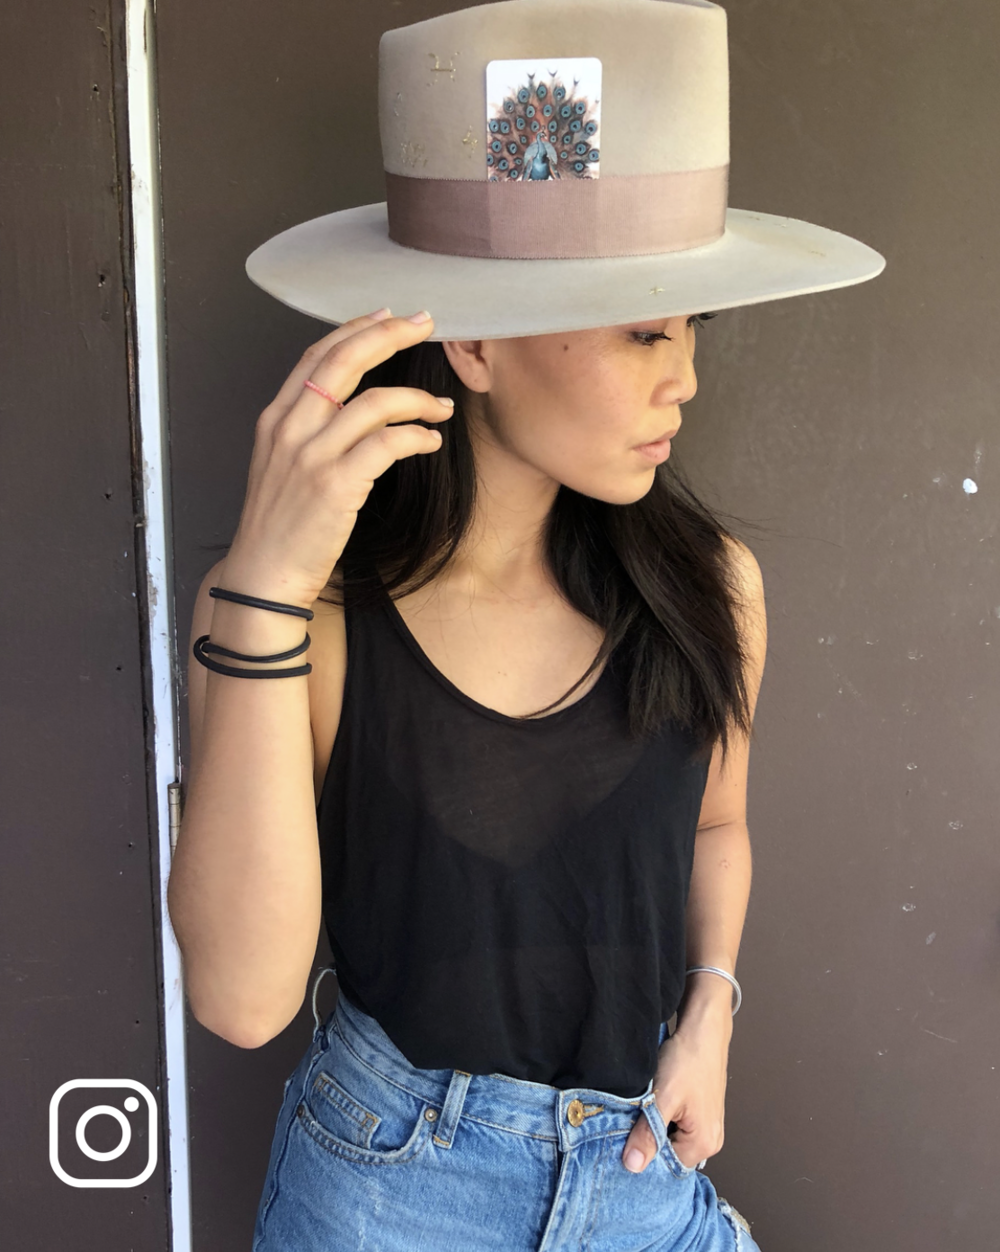 """""""Alberto Hernandez is the only hatmaker you need to know. Thank you for my custom hat  @meshikahats !⚡️⚡️⚡️⚡️ the details mean so much to me..."""" @thealiciahannah"""